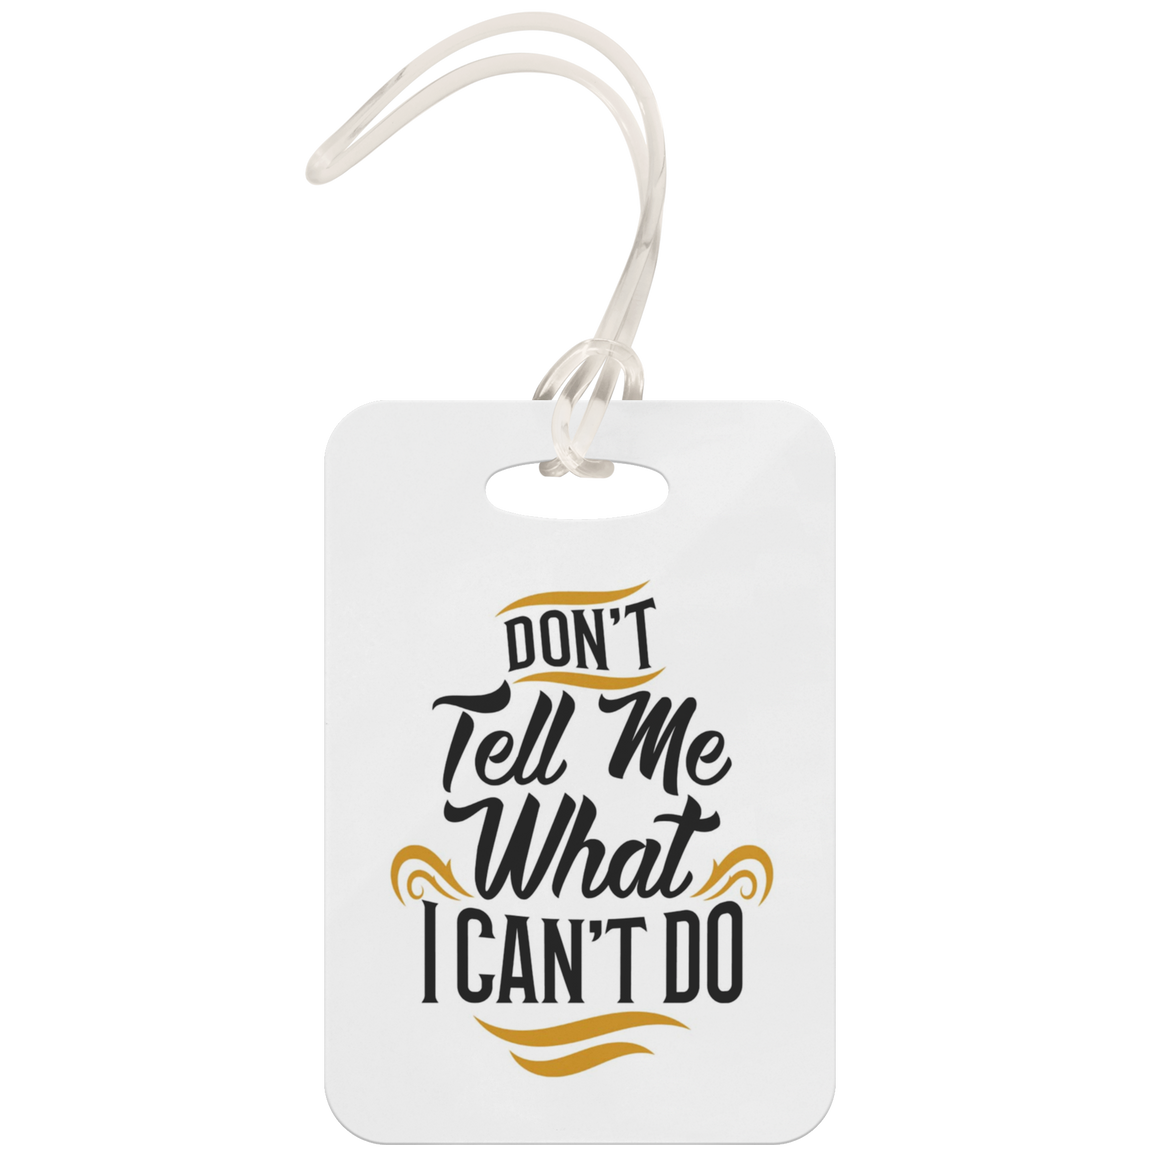 Harriet Tubman, Don't Tell Me What I Can't Do Luggage Tag White, Black Gold